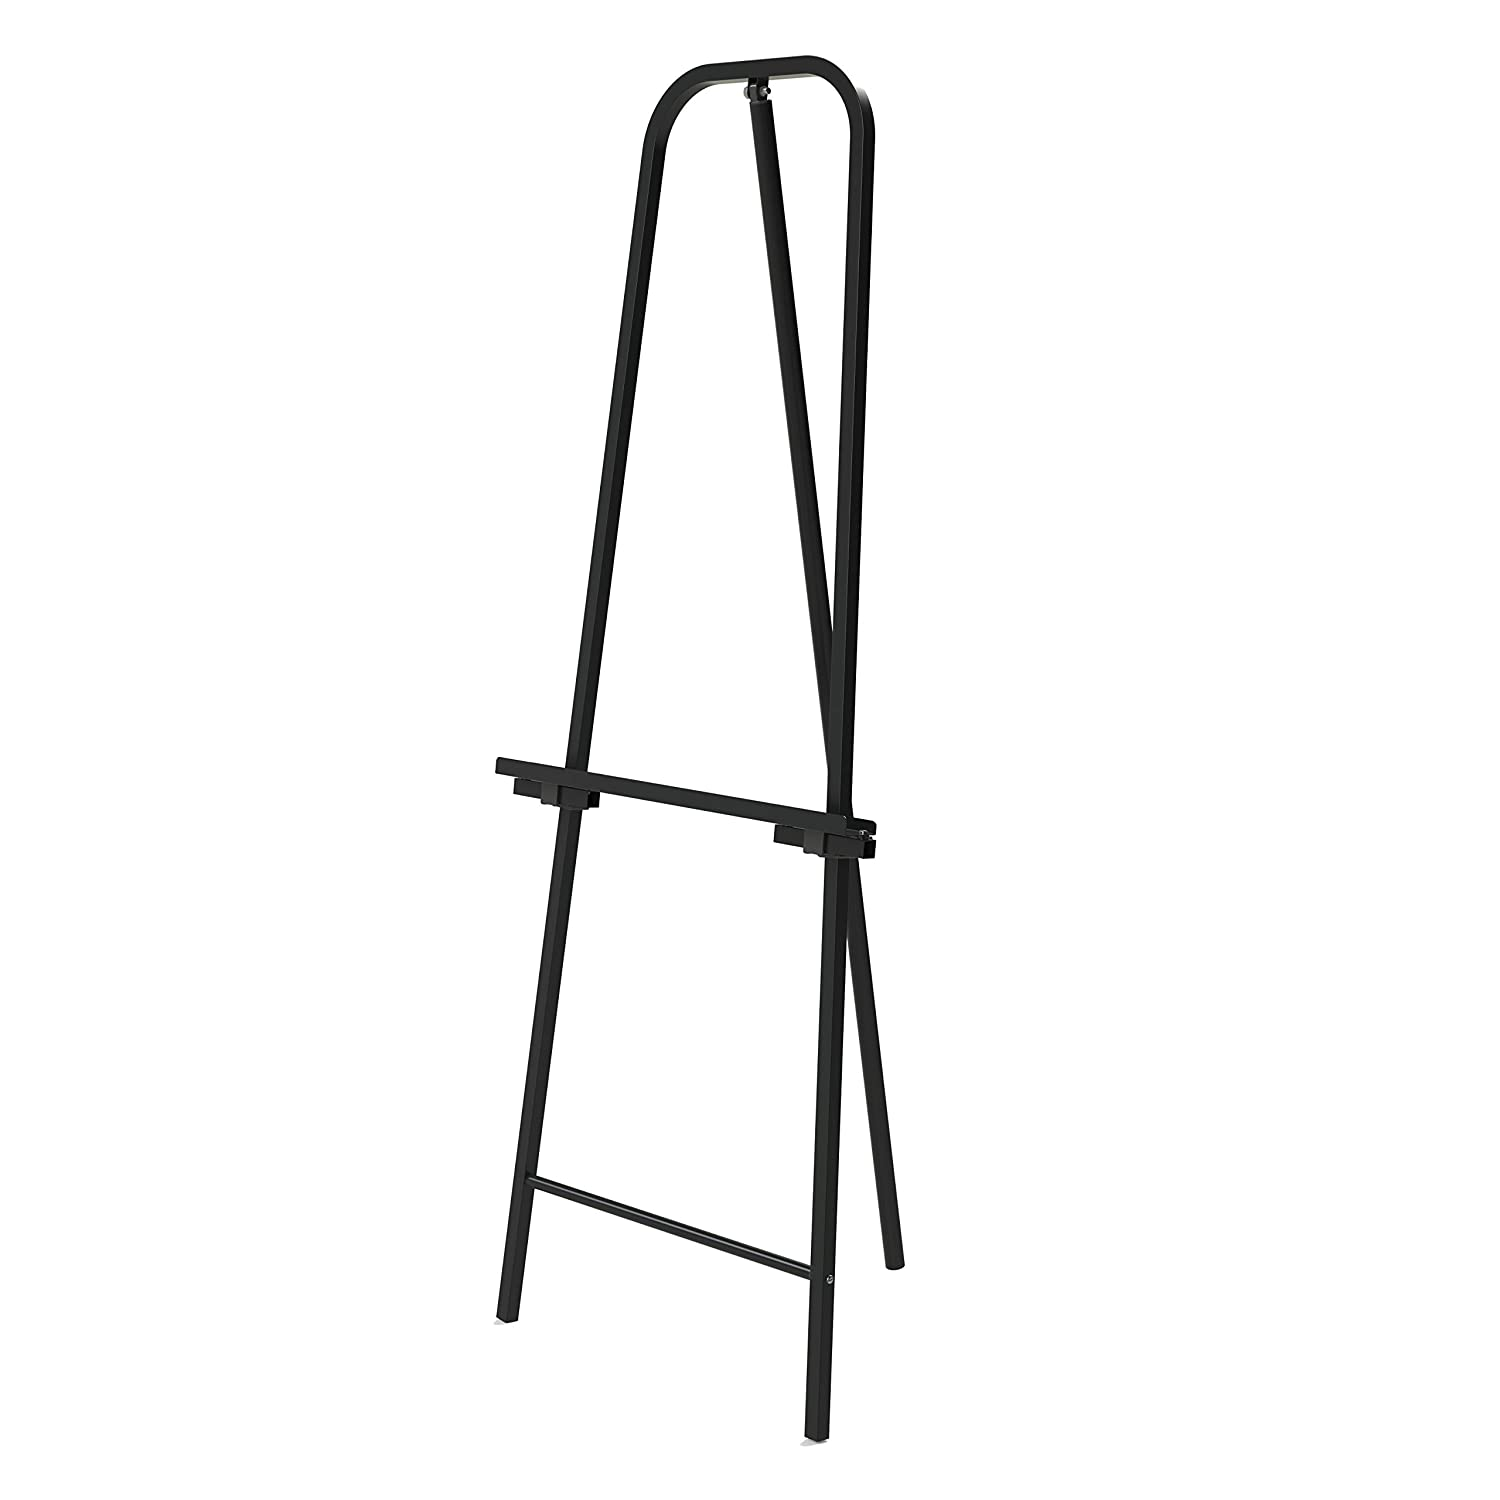 Crown Easel Heavy-Duty Metal Easel Stand for Art, Painting & Display Black (Pack of 1)